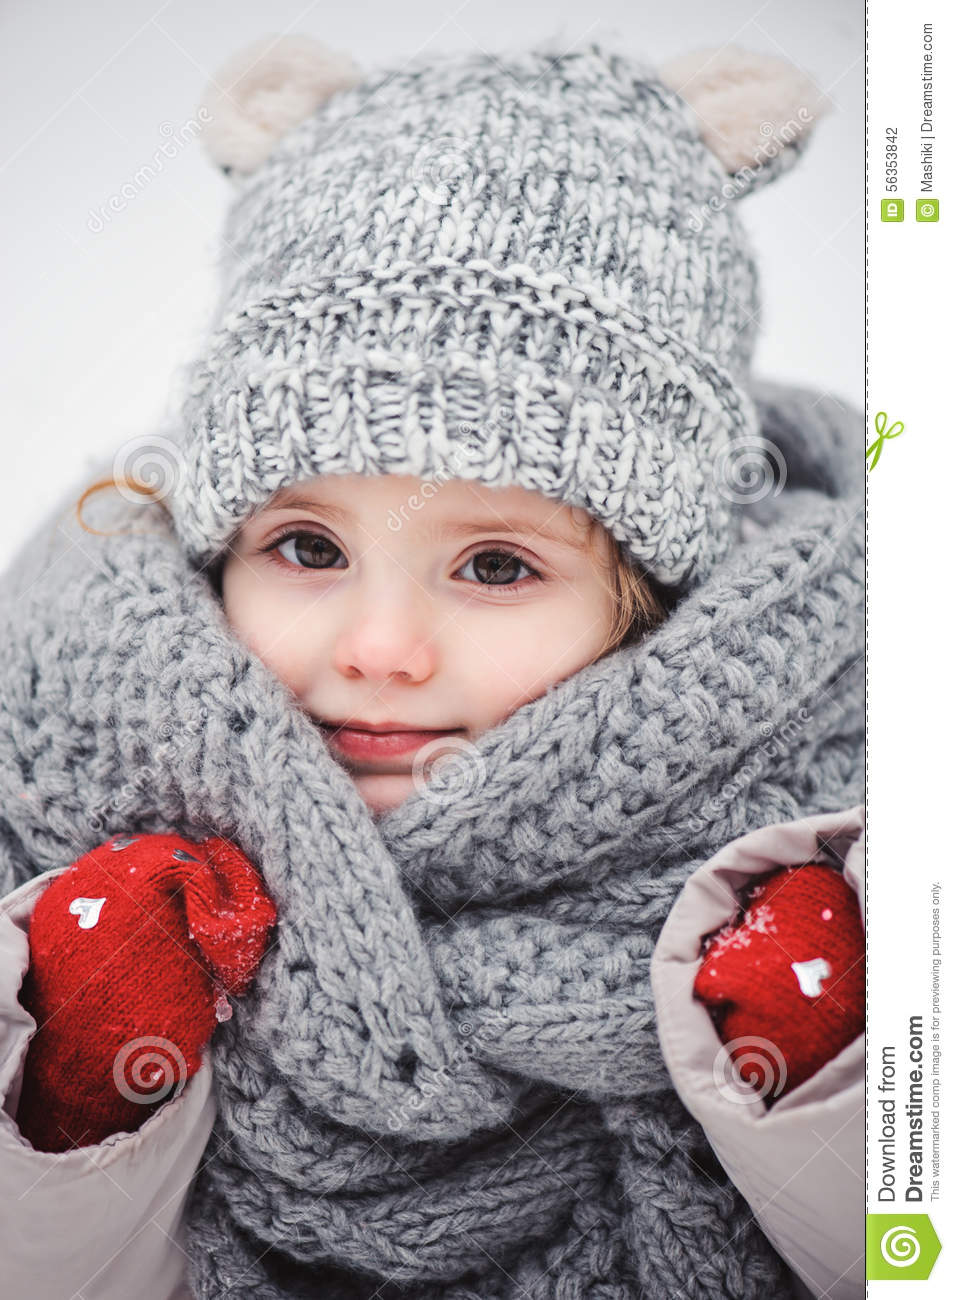 winter close up vertical portrait of adorable smiling baby girl in grey knitted hat and scarf. Black Bedroom Furniture Sets. Home Design Ideas